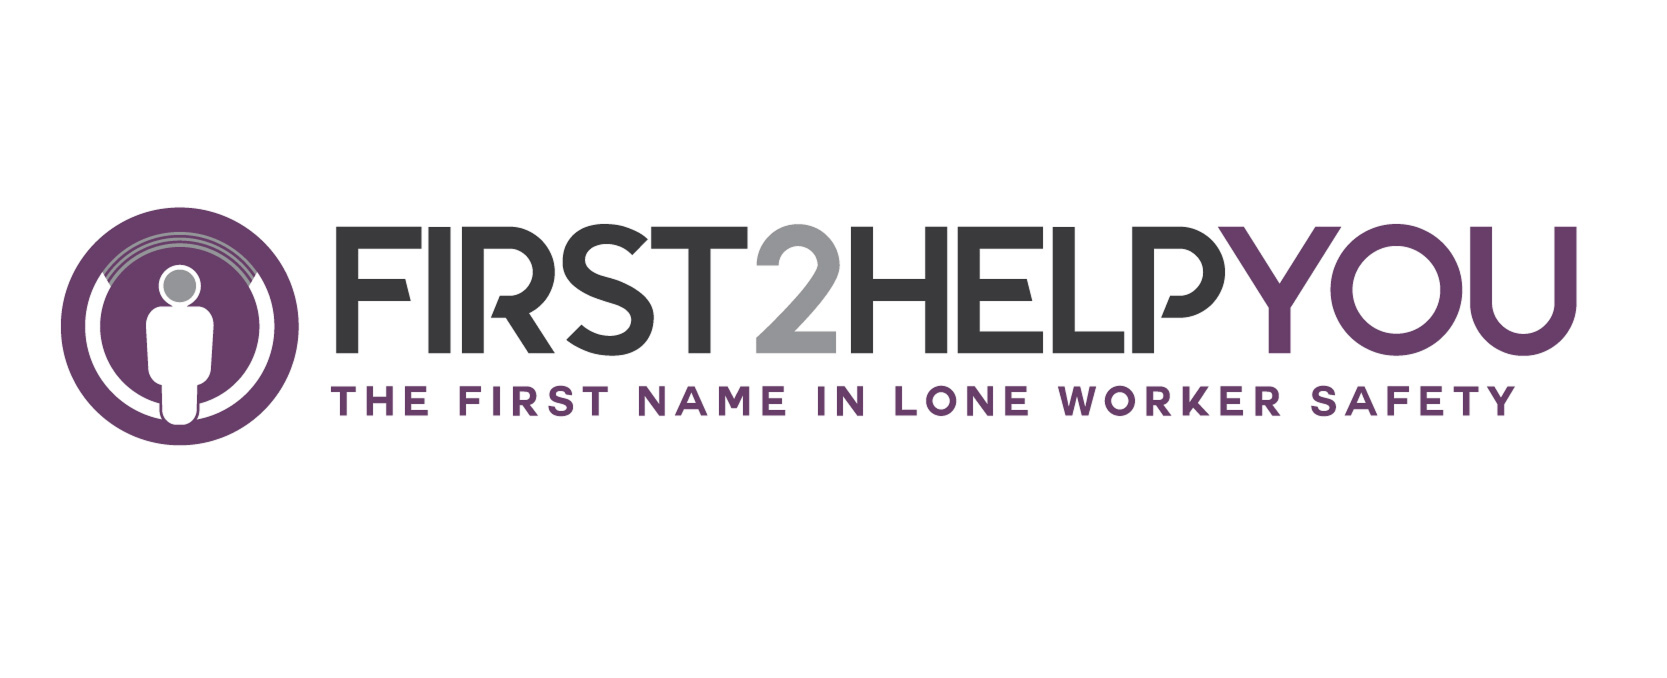 First2HelpYou Ltd